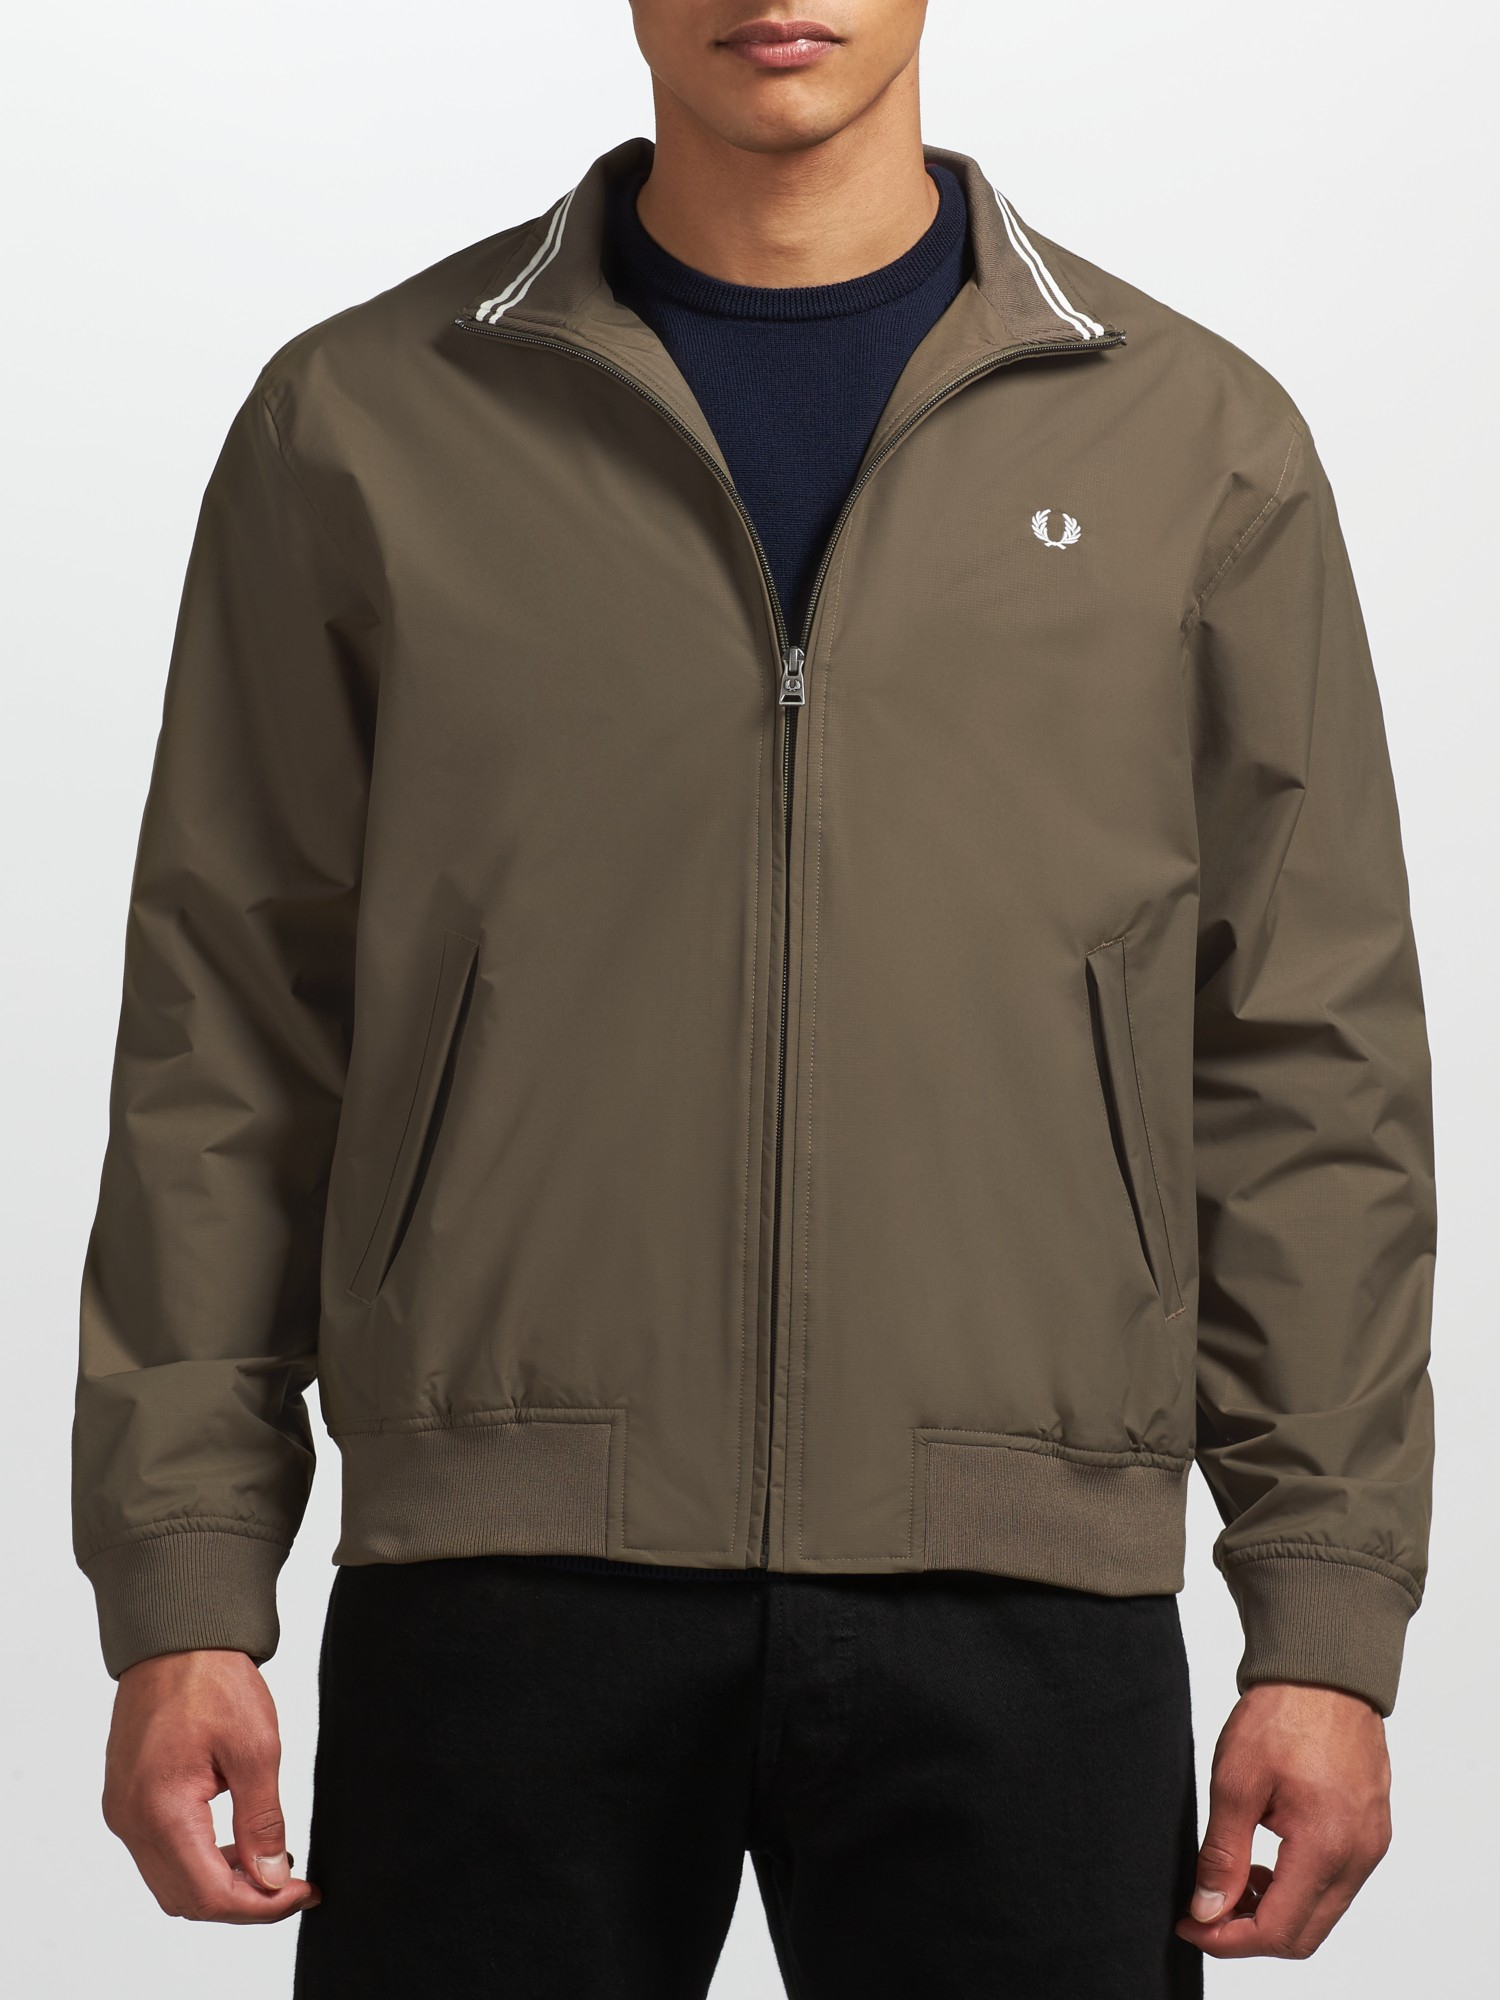 fred perry brentham jacket in brown for men lyst. Black Bedroom Furniture Sets. Home Design Ideas